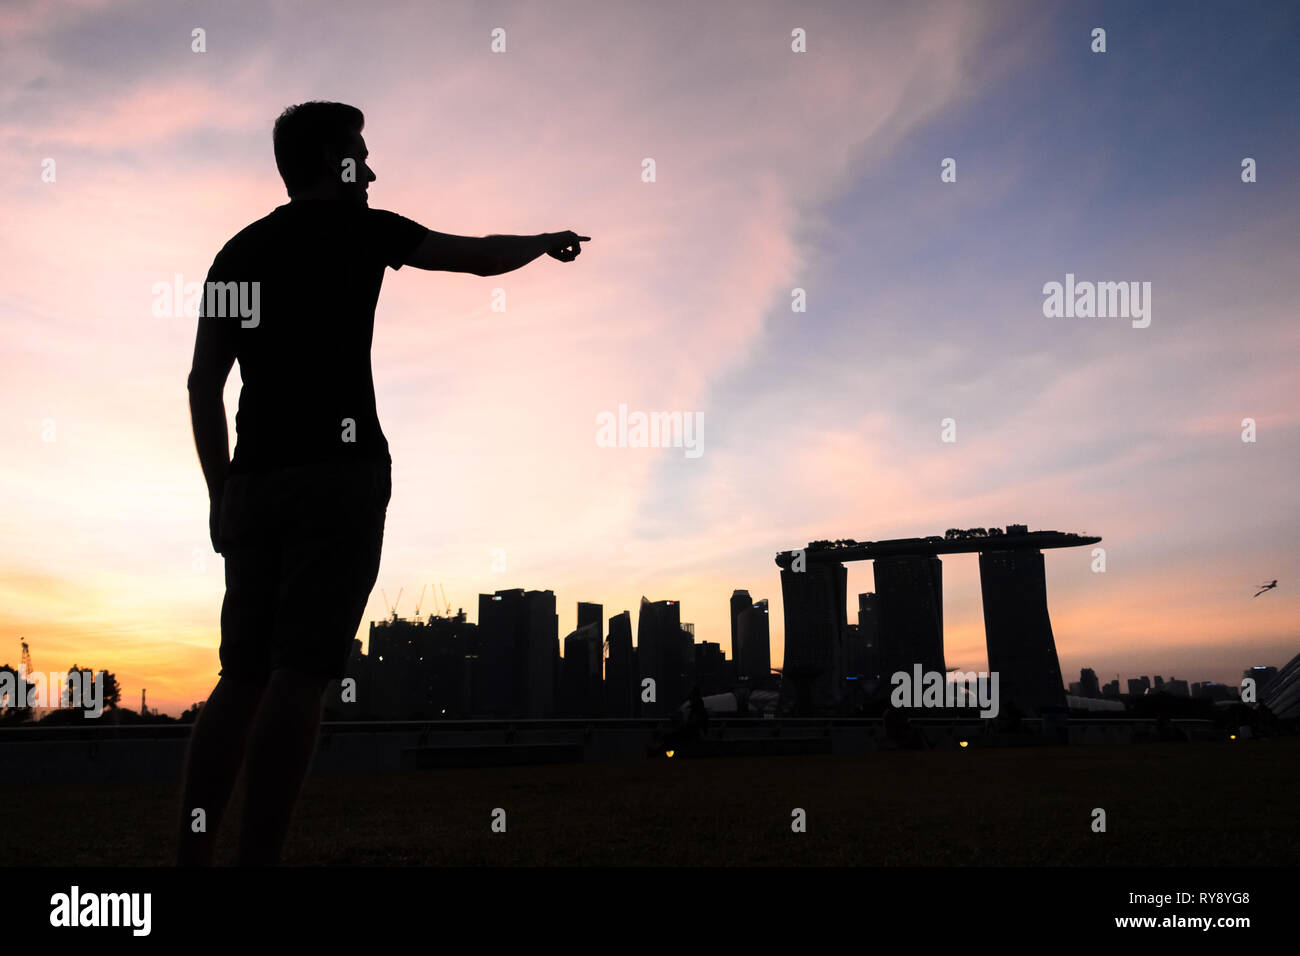 Tourist man silhouette at Marina Barrage, With Sunset Skyline - Singapore - Stock Image